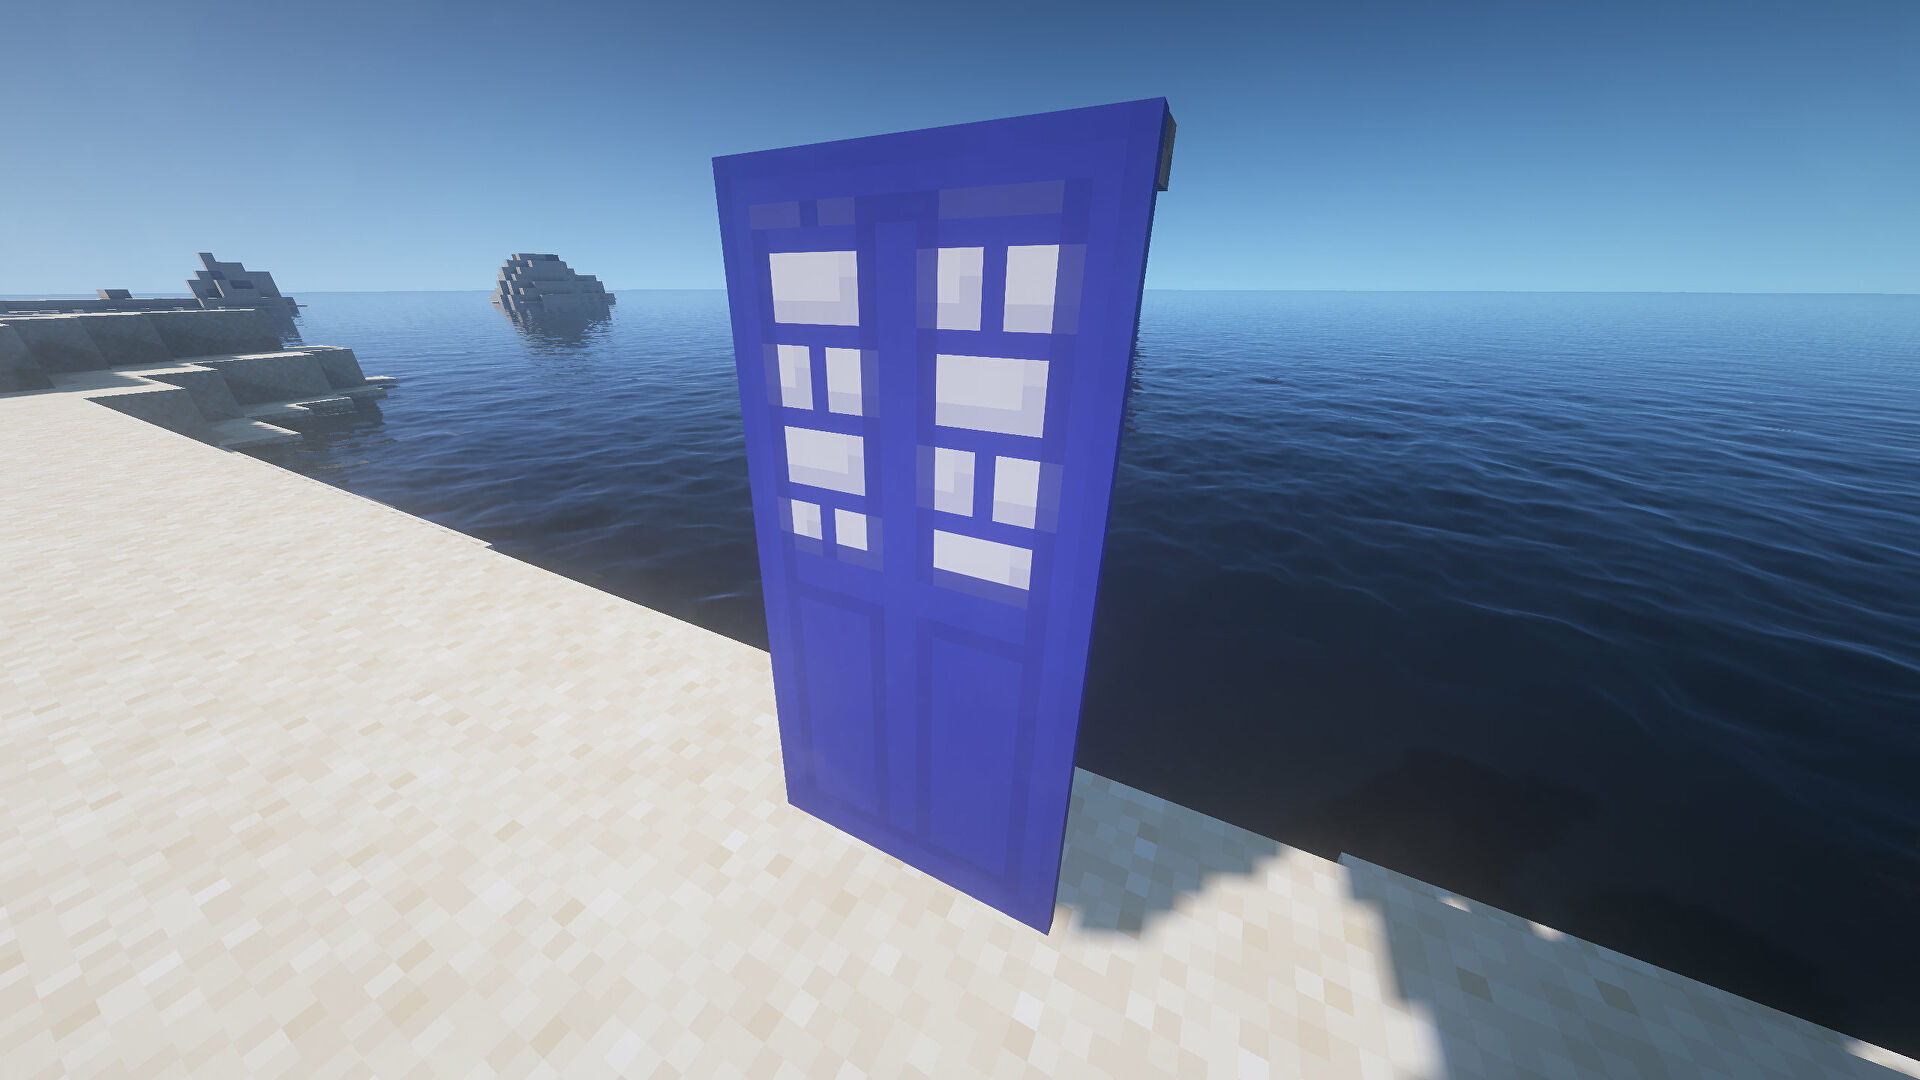 A TARDIS Banner in Minecraft, placed in the ground by the coast.